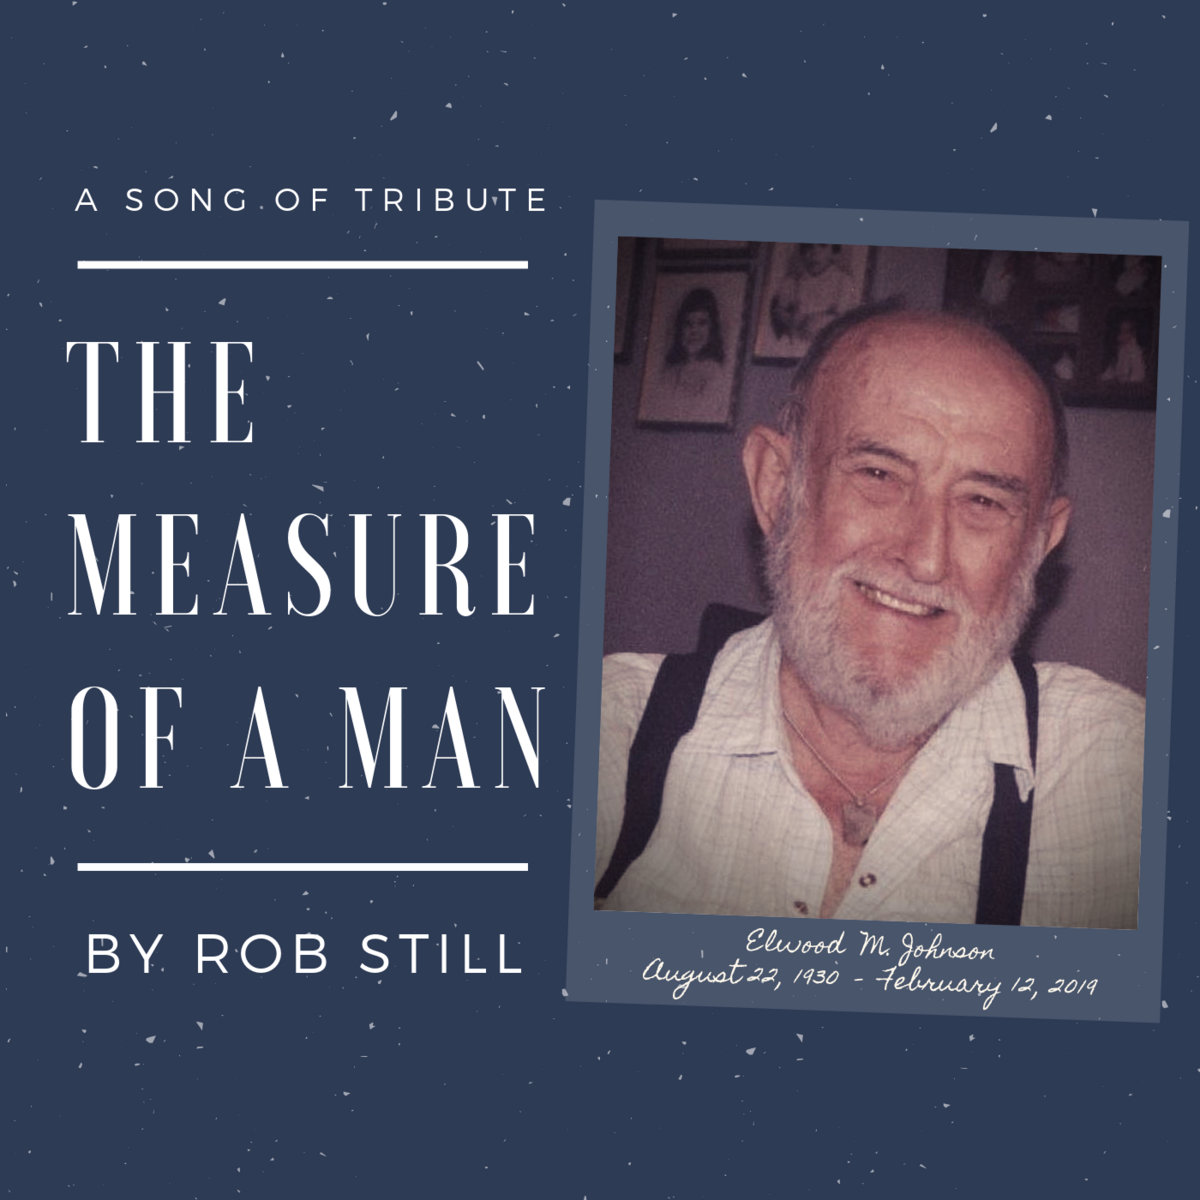 The Measure of A Man [SINGLE] by Rob Still